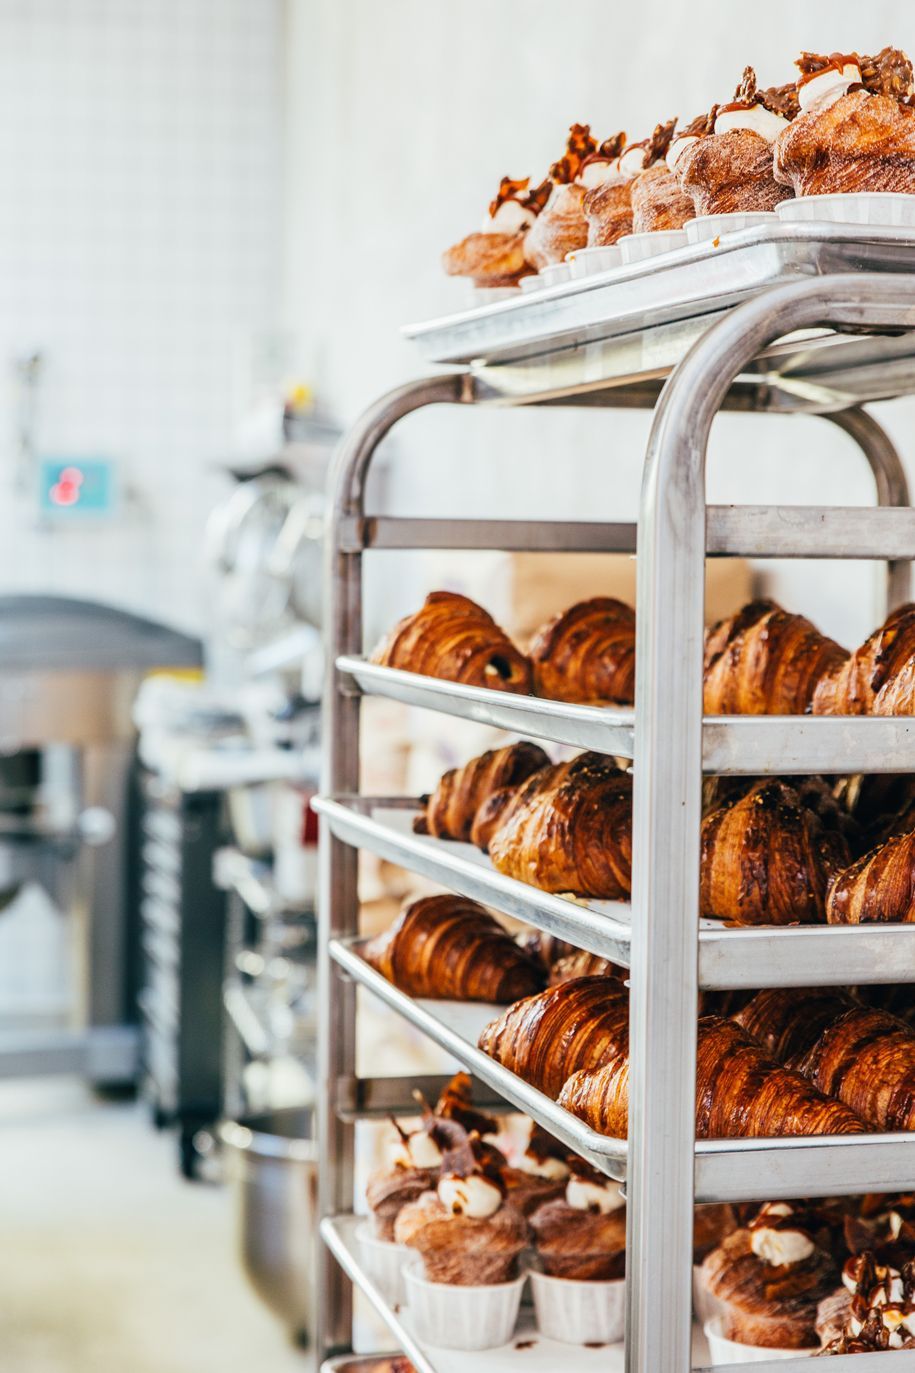 Best bakeries in new york city the boy who bakes good